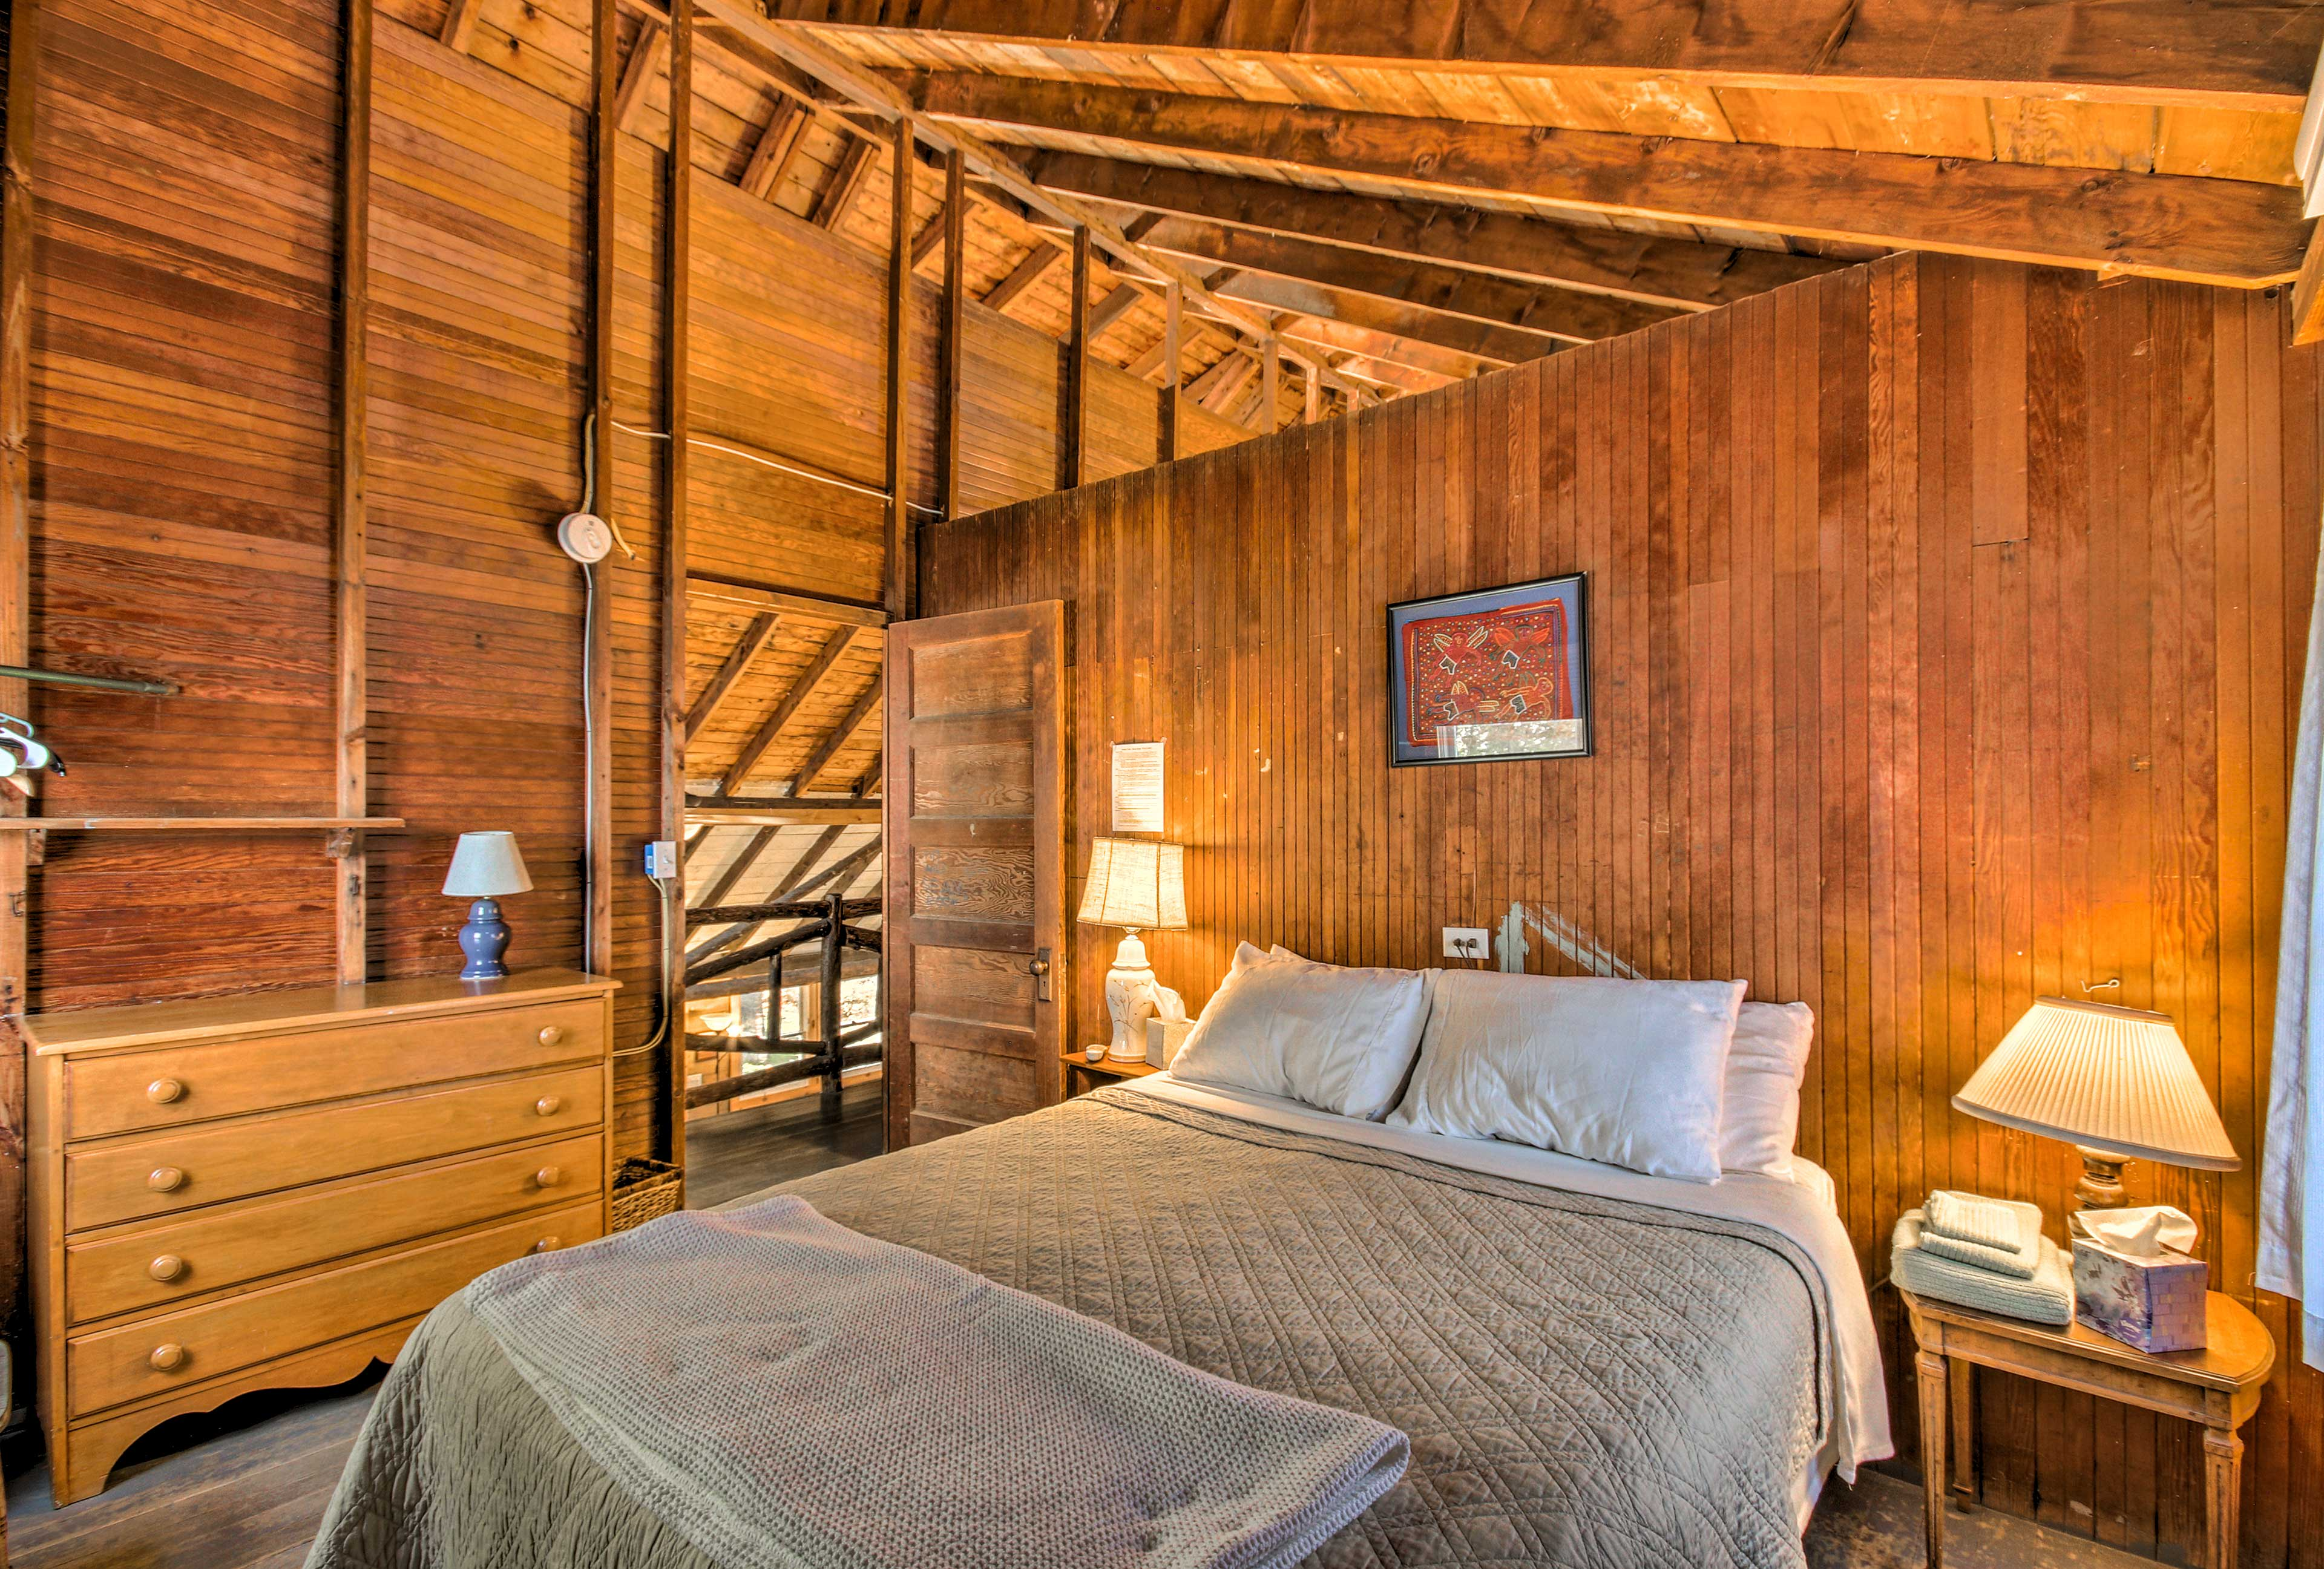 Sleep soundly in this home's first upstairs bedroom.